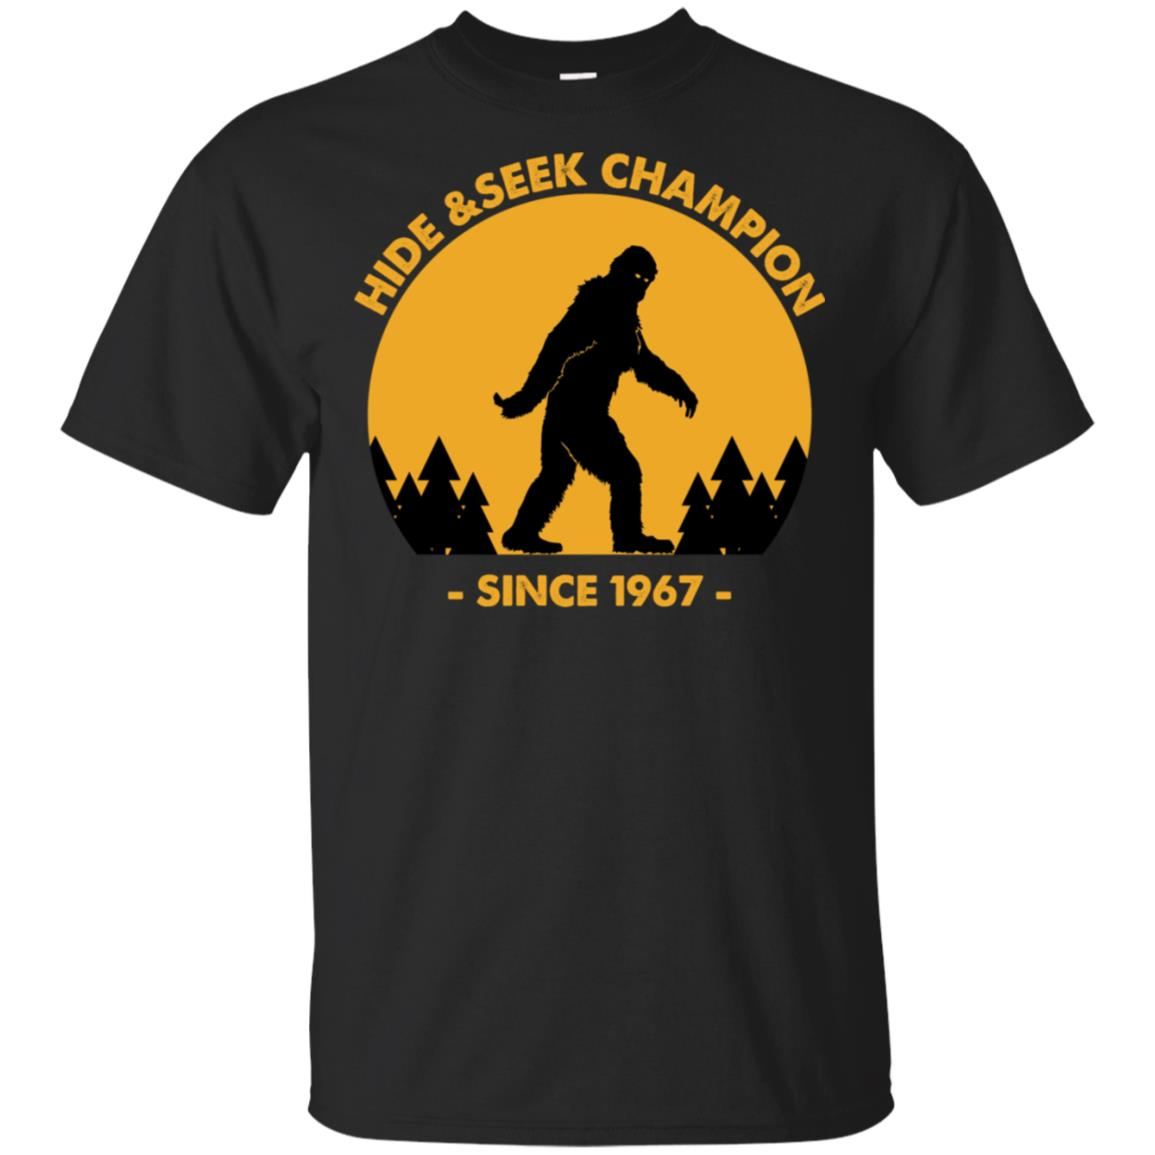 Bigfoot Hide And Seek Champion Since 1967 Sweater Unisex Short Sleeve